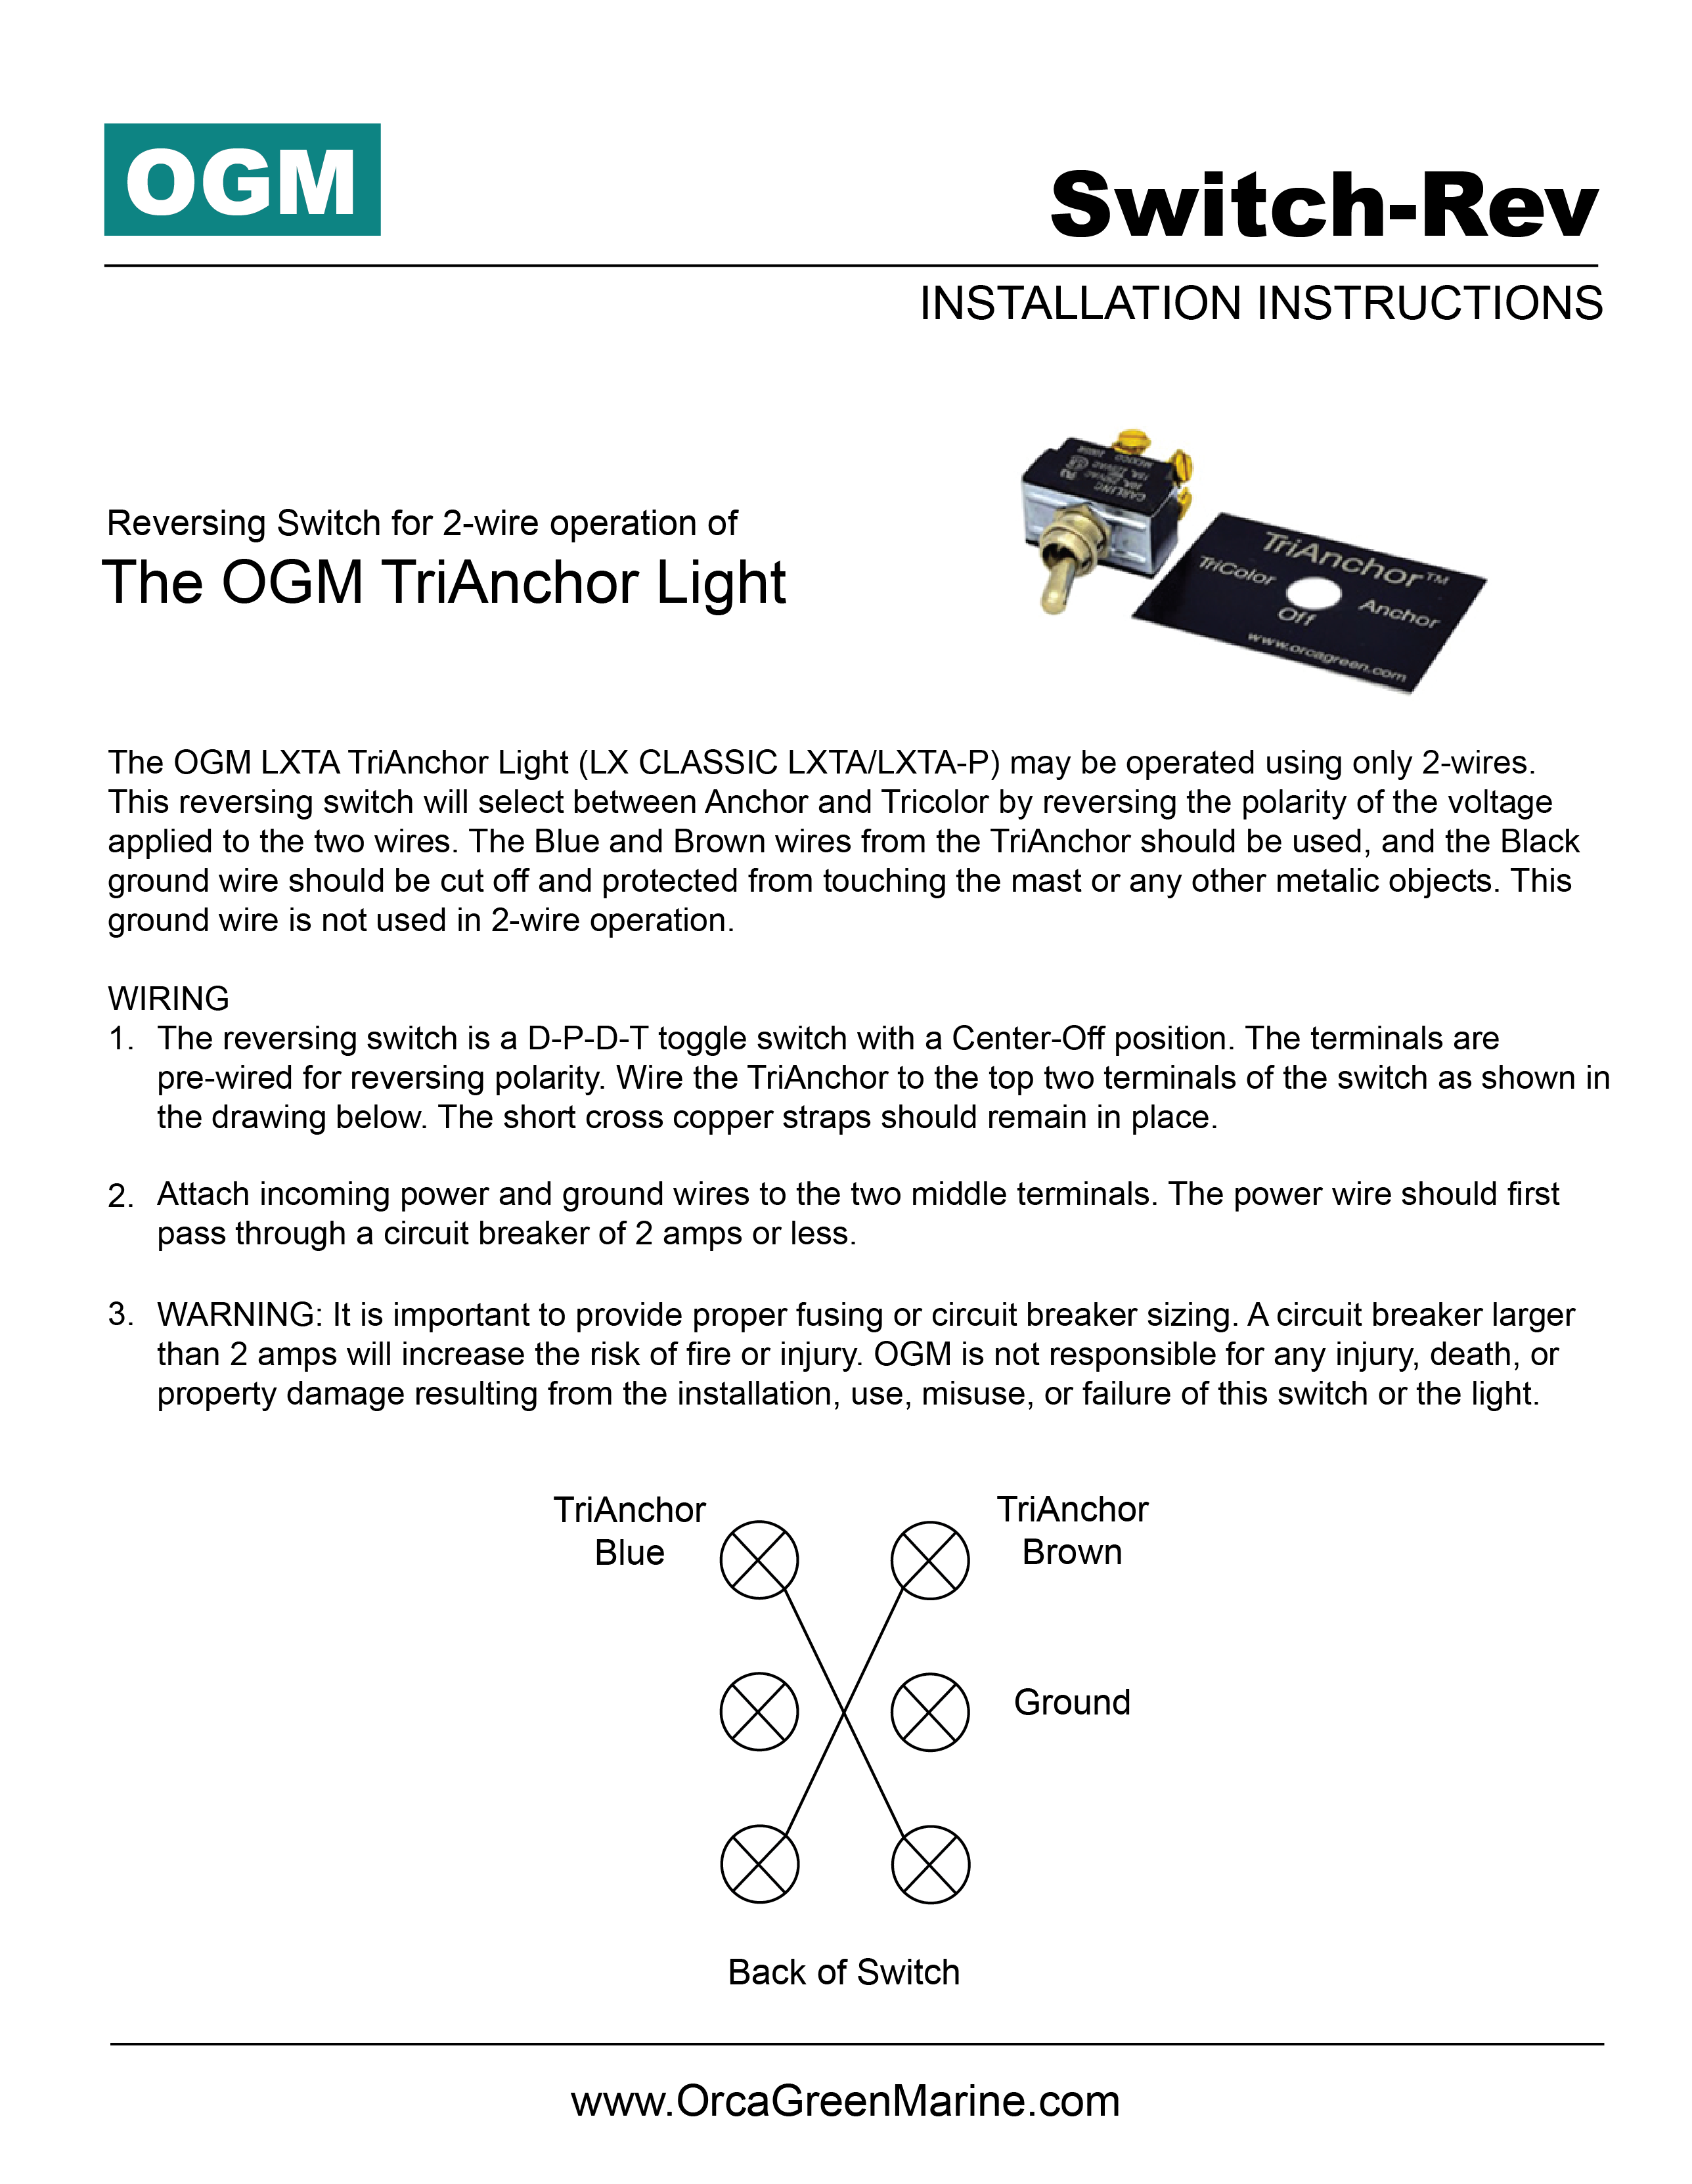 Installation Instructions Orca Green Marine Ogm Led Lighting Light Switch Wiring On A First Lx2 Series Running Lights Guide Pdf